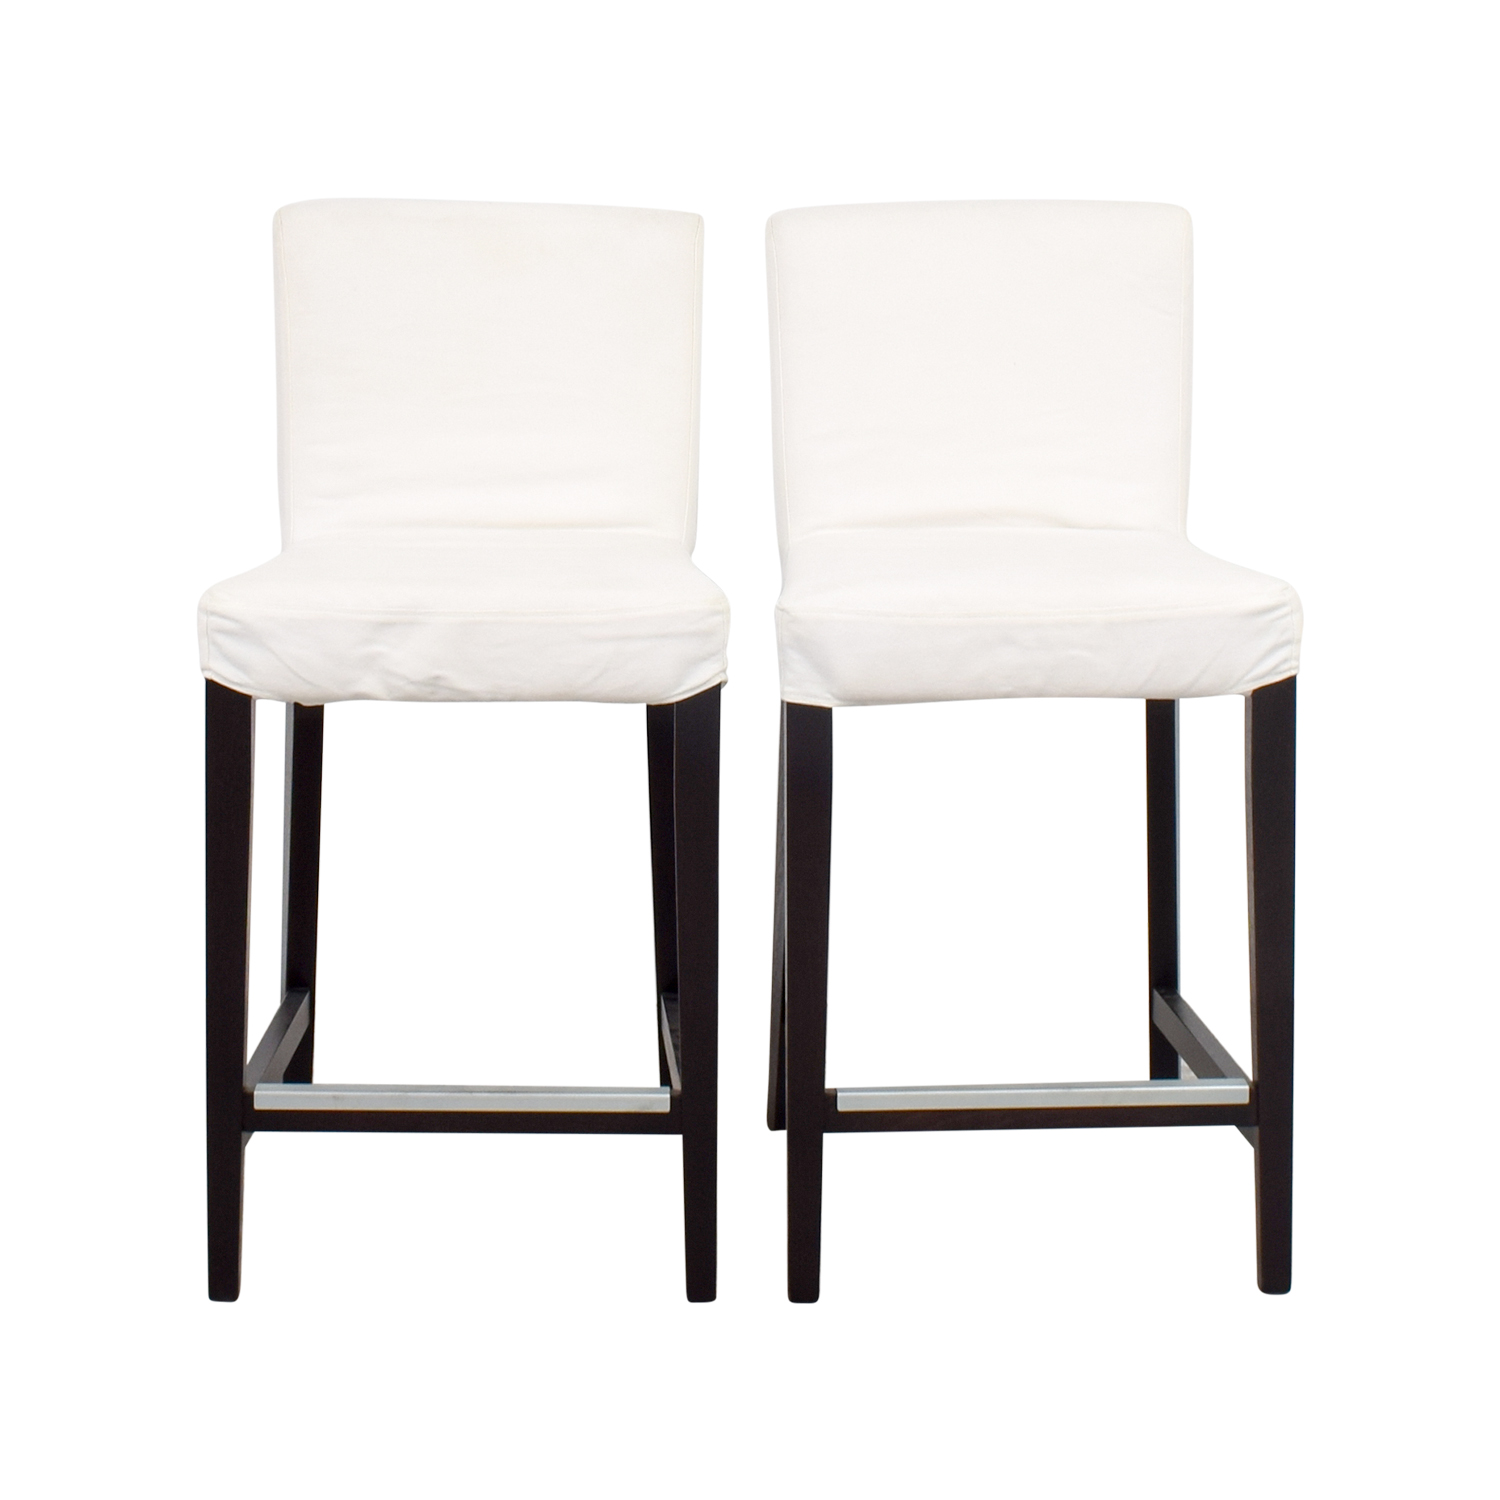 IKEA IKEA HENRIKSDAL White Covered Bar Stools for sale ...  sc 1 st  Furnishare & 69% OFF - IKEA IKEA HENRIKSDAL White Covered Bar Stools / Chairs islam-shia.org